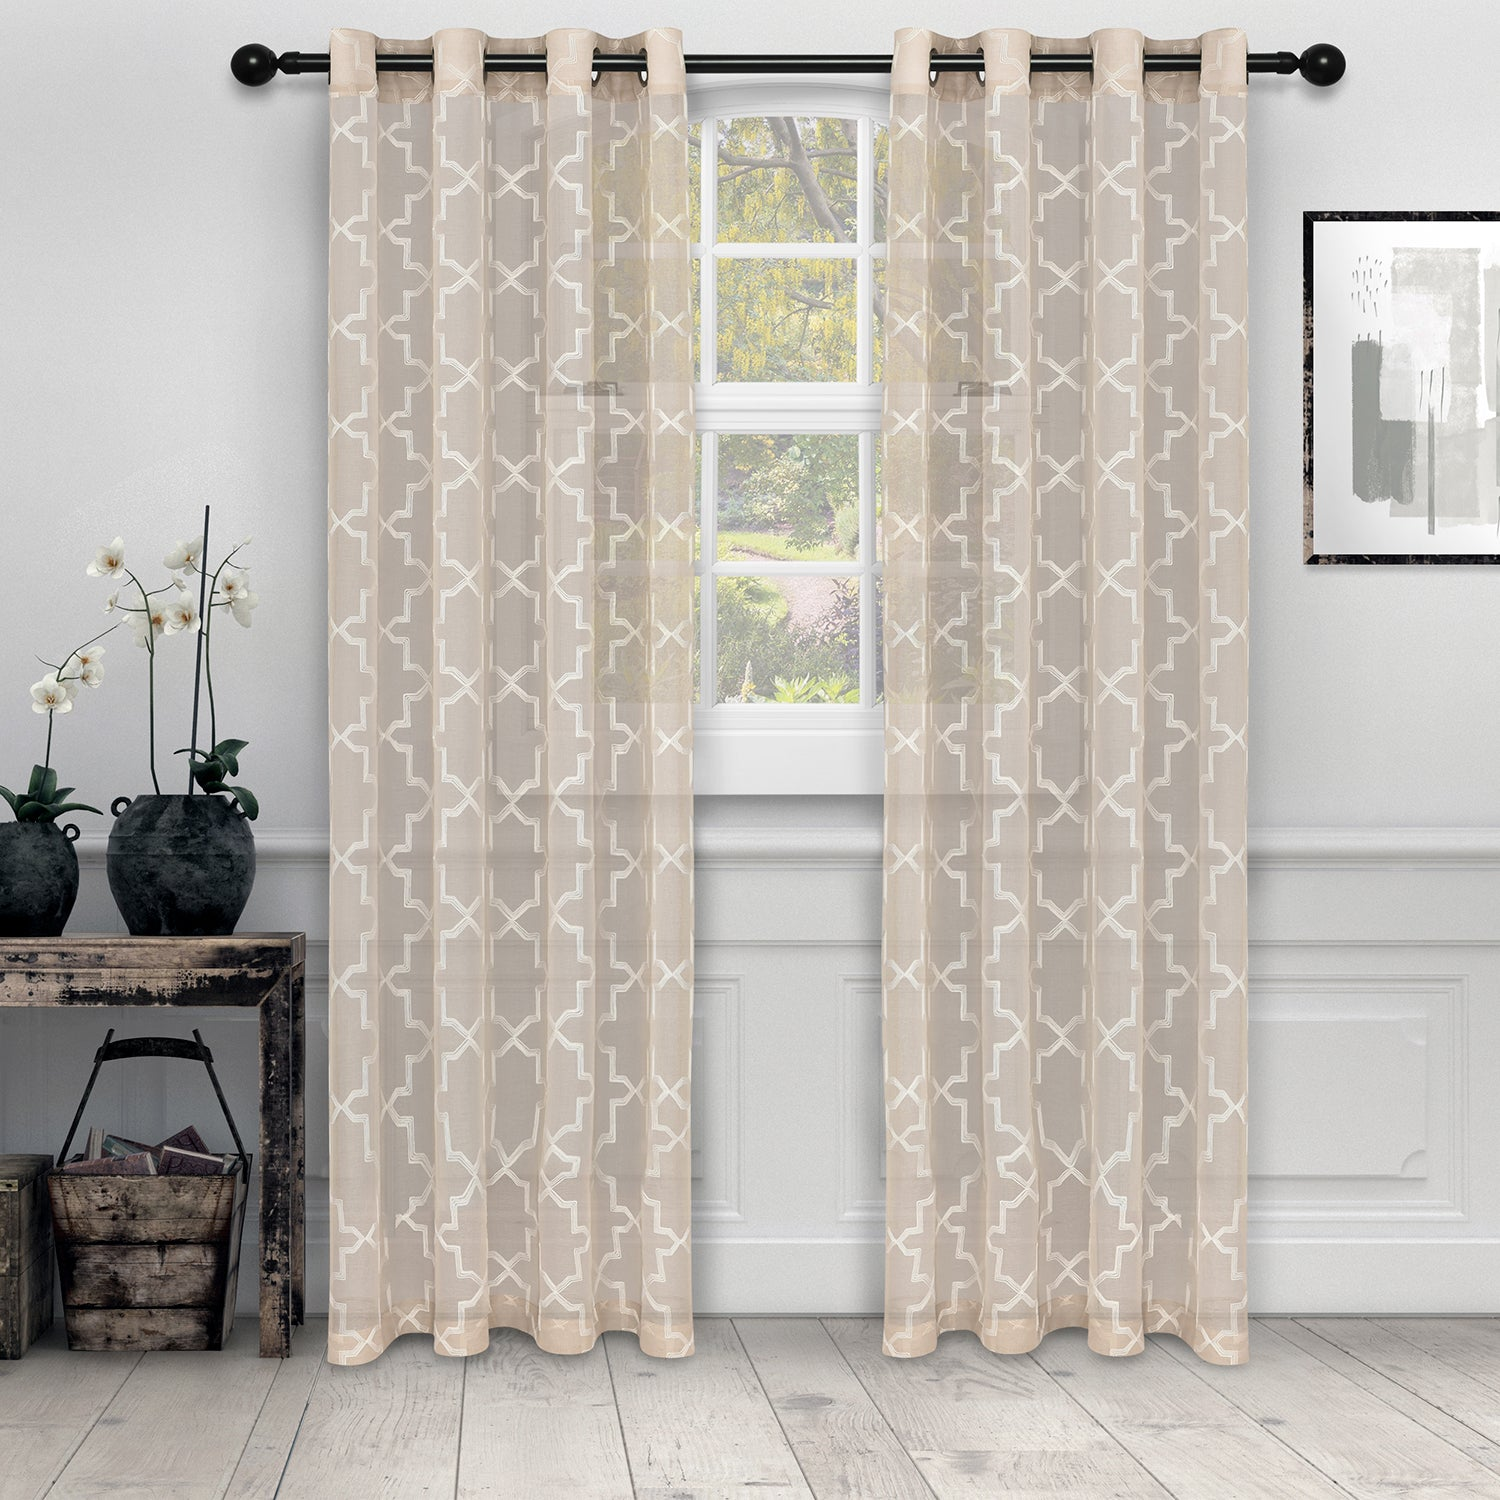 Superior Semi-Sheer Embroidered Quatrefoil Curtain Panels